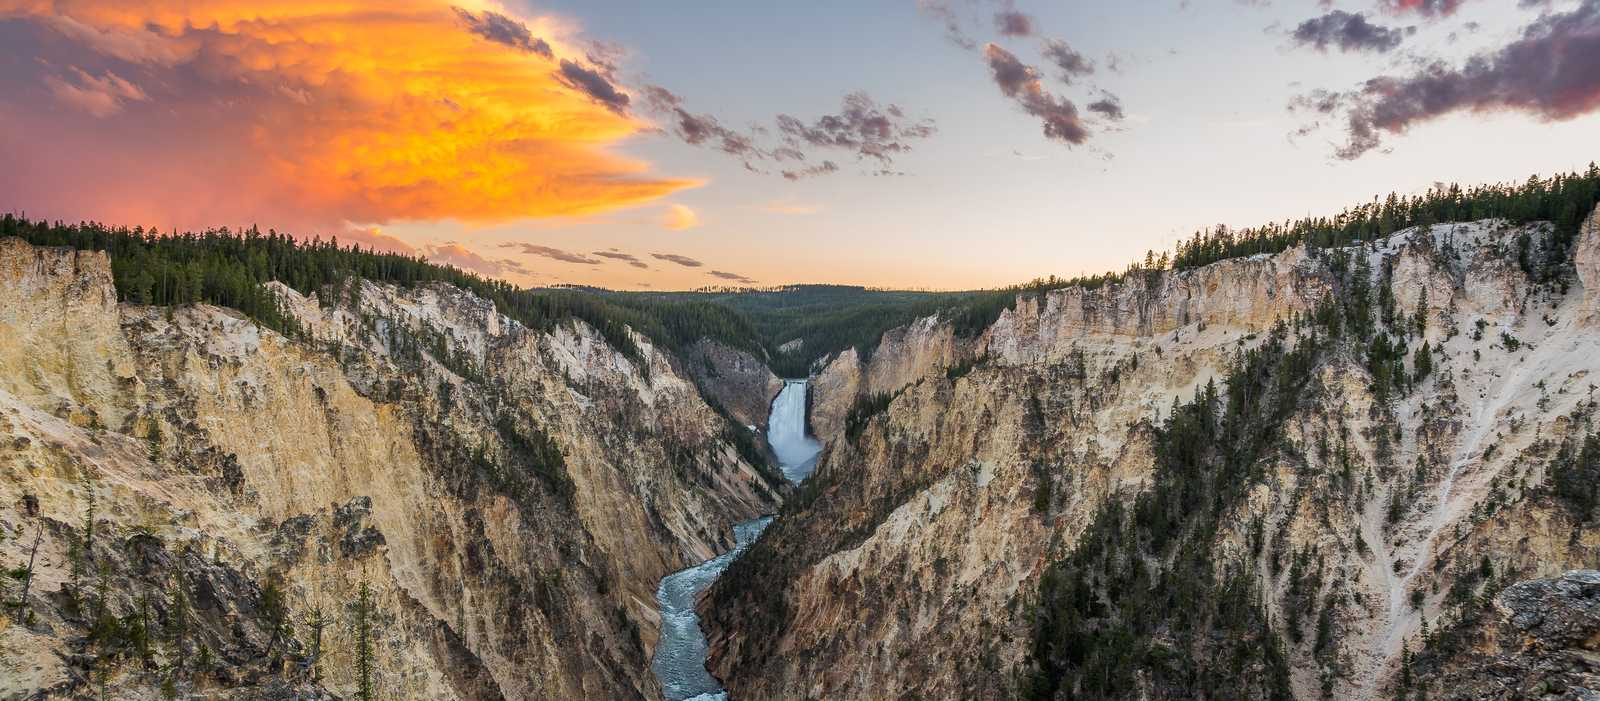 Sonnenuntergang am Grand Canyon of the Yellowstone, Yellowstone, Wyoming